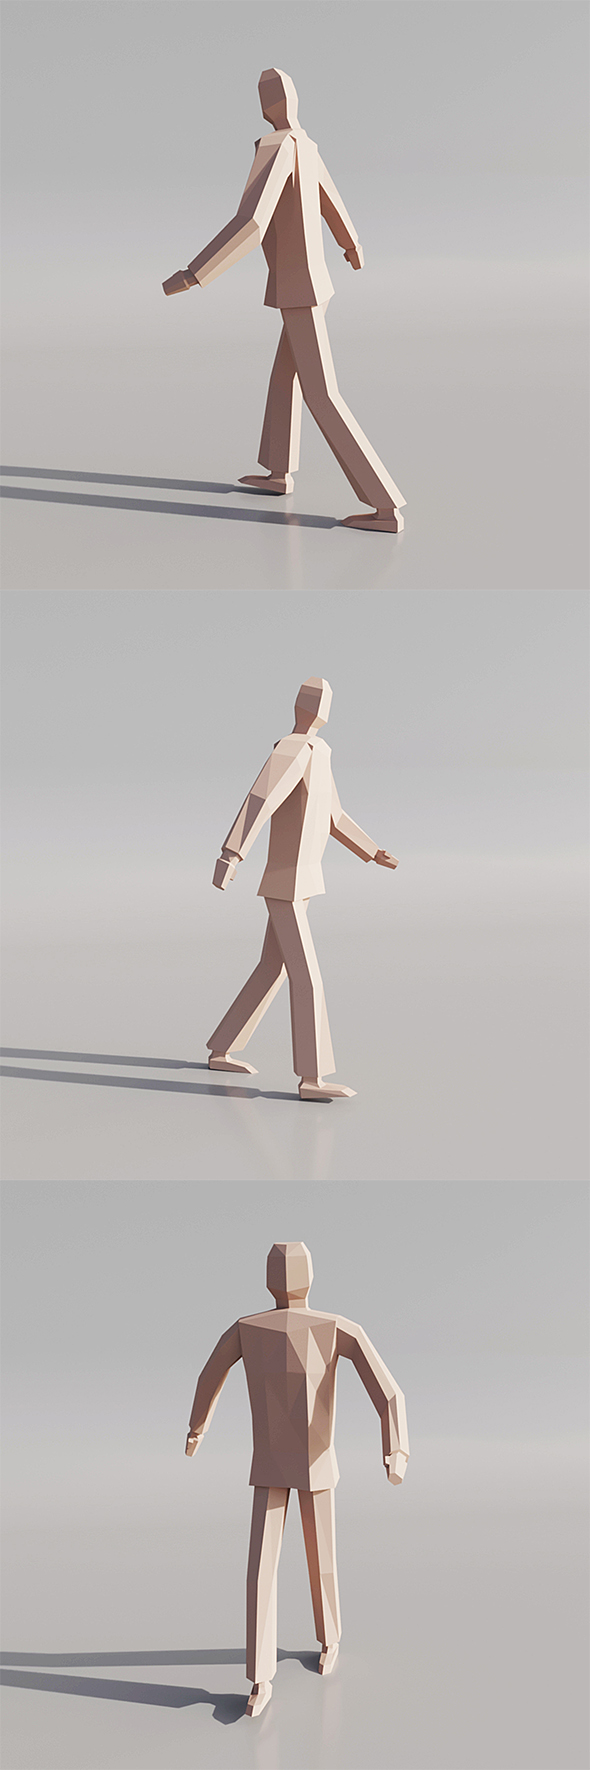 Low poly human - 3DOcean Item for Sale